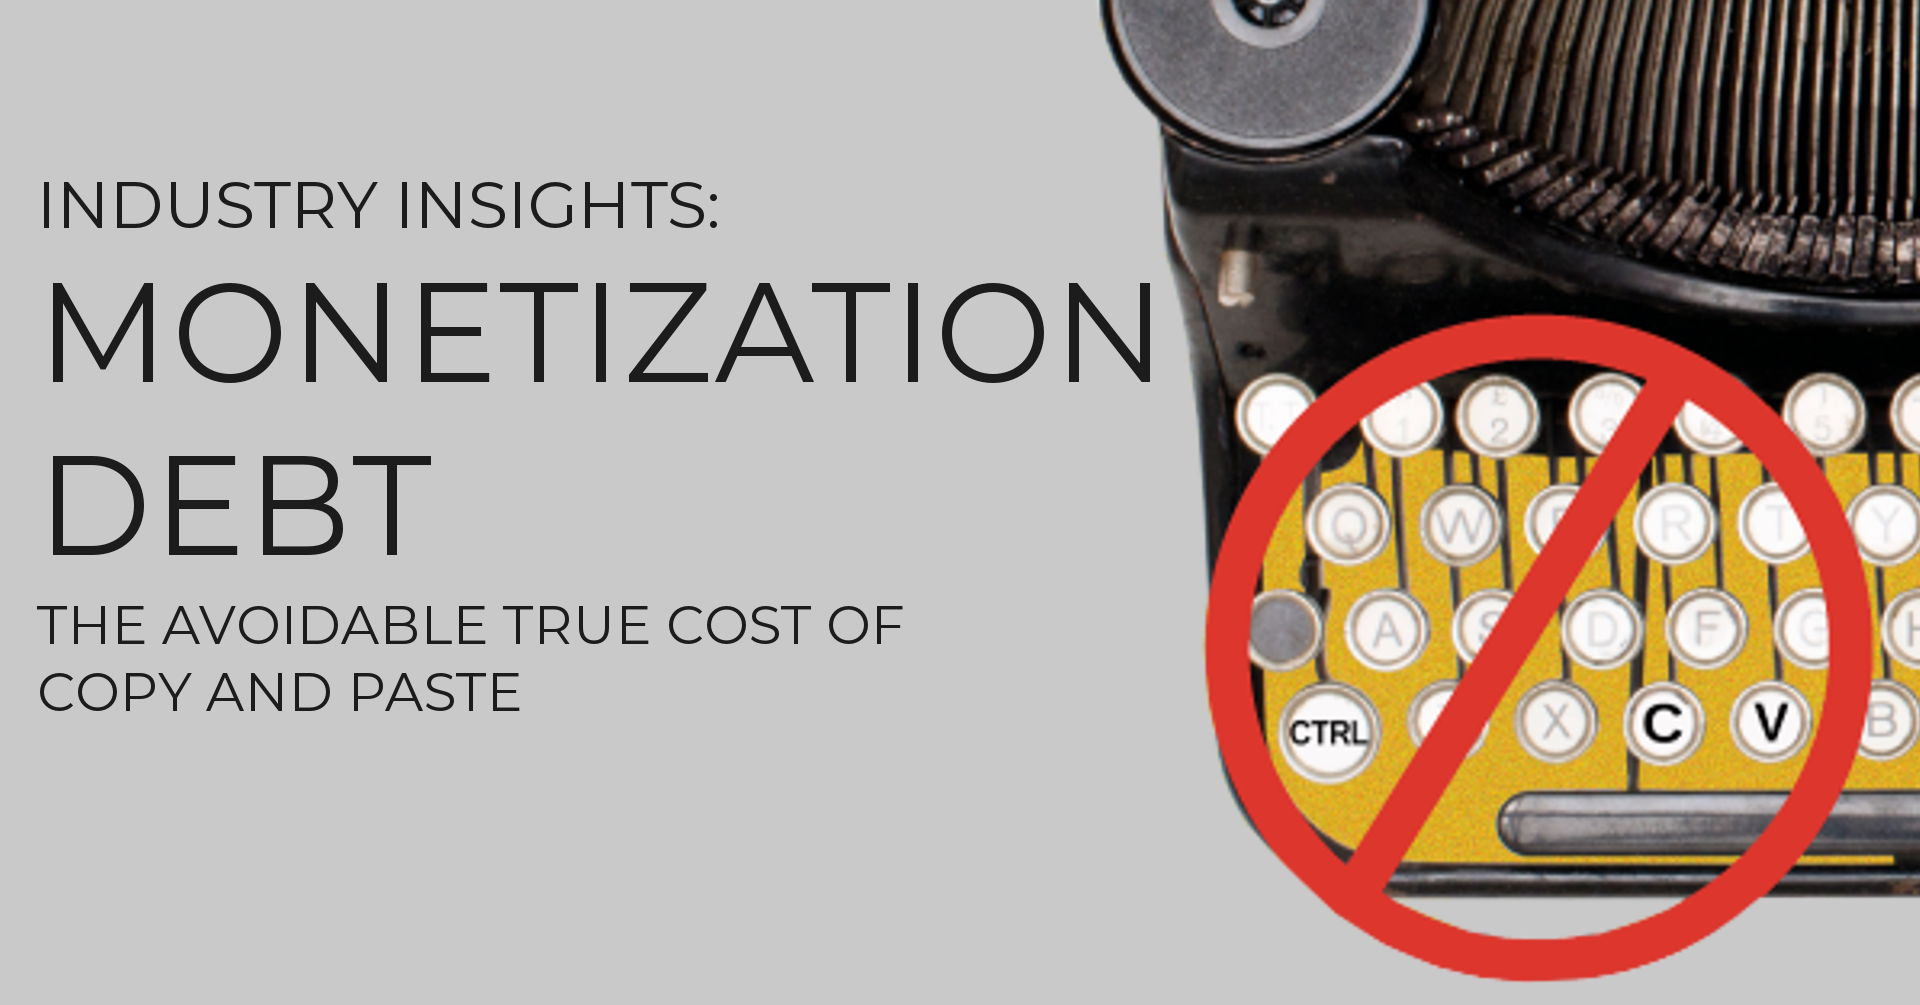 Monetization Debt, the Avoidable true cost of Copy & Paste